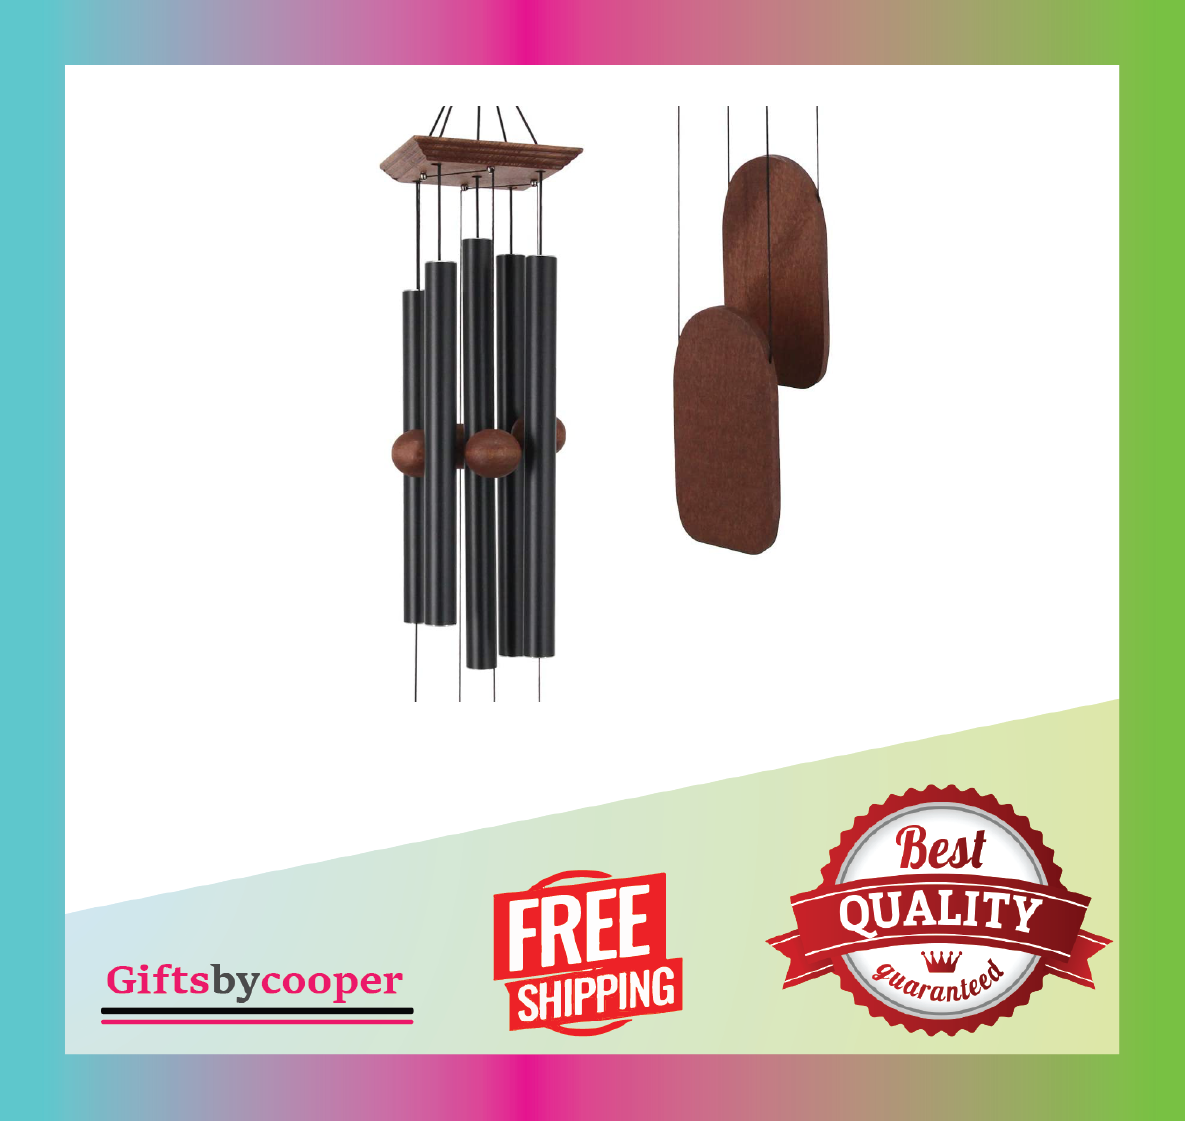 Memorial Wind Chimes Outdoor Gifts Wind Chimes Outdoor Large Deep Tone